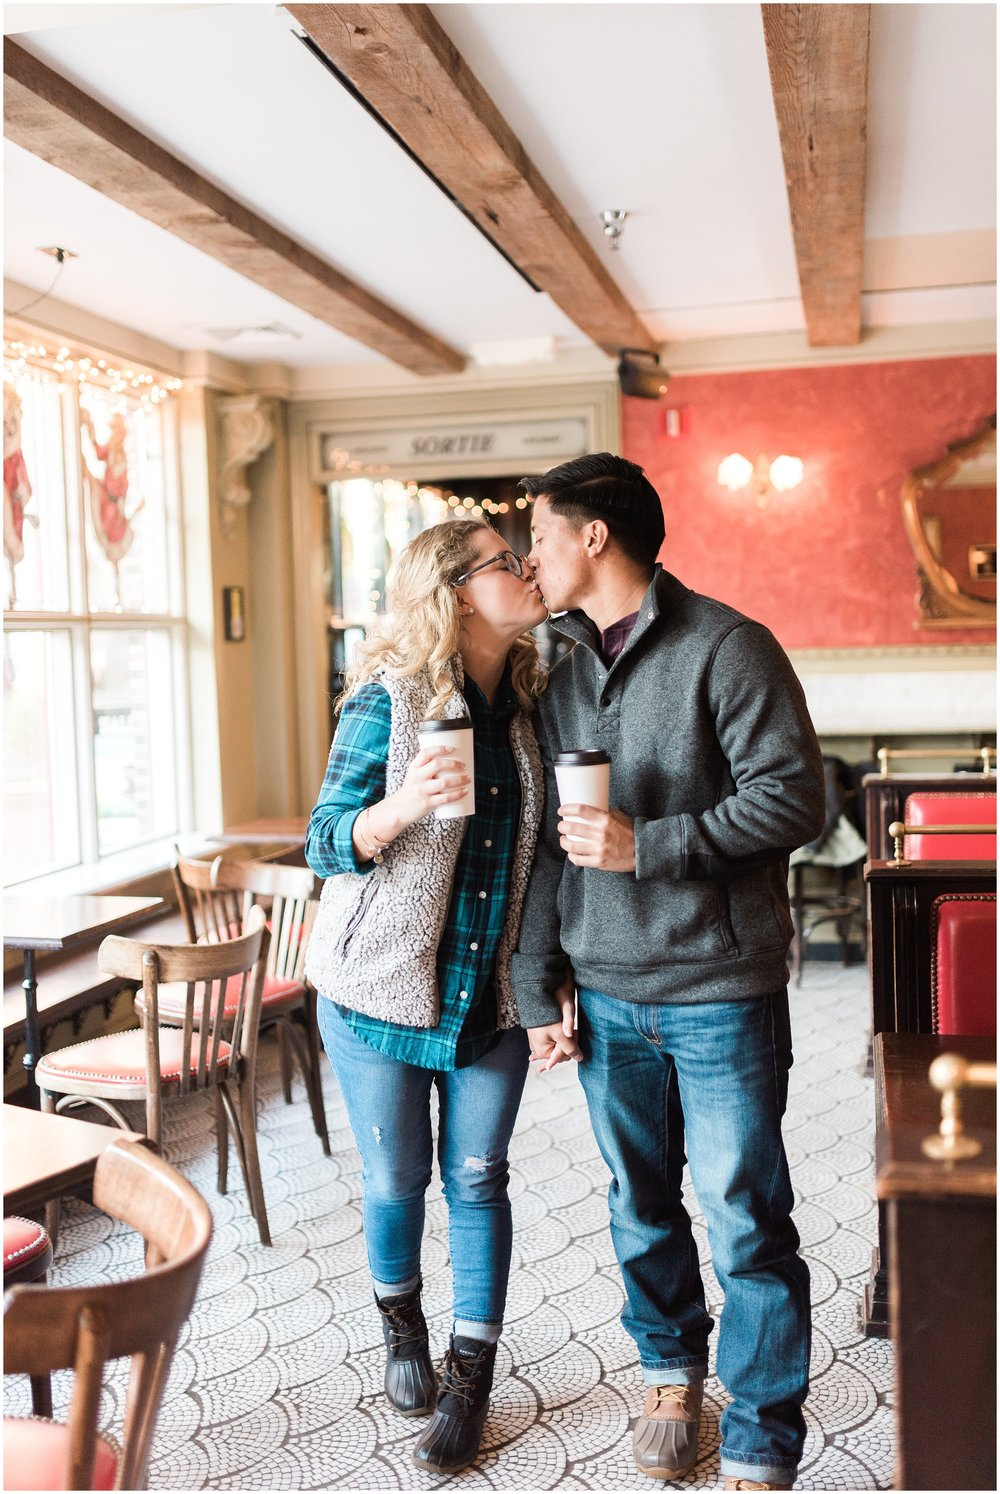 NJ-Princeton-University-Coffee-Cafe-Winter-Engagement-Session-Photo-_0016.jpg